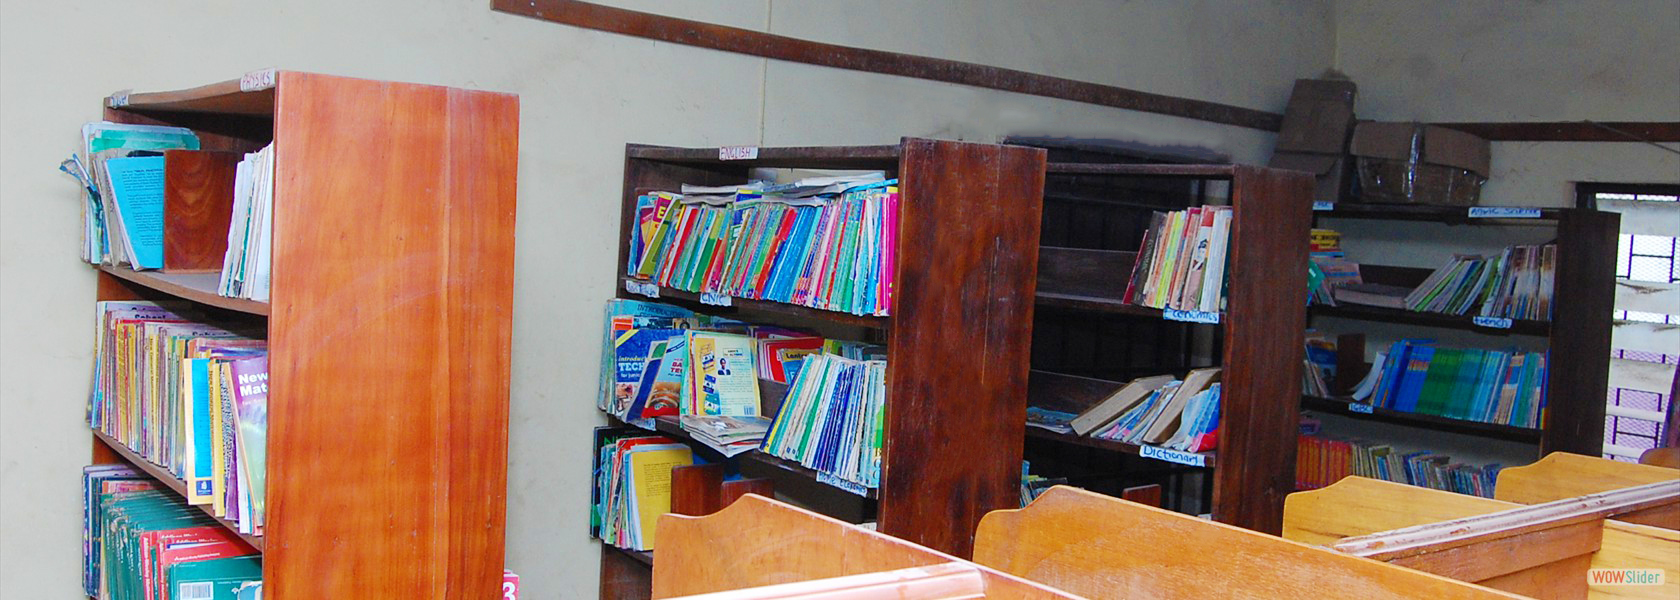 Up to Date School Library